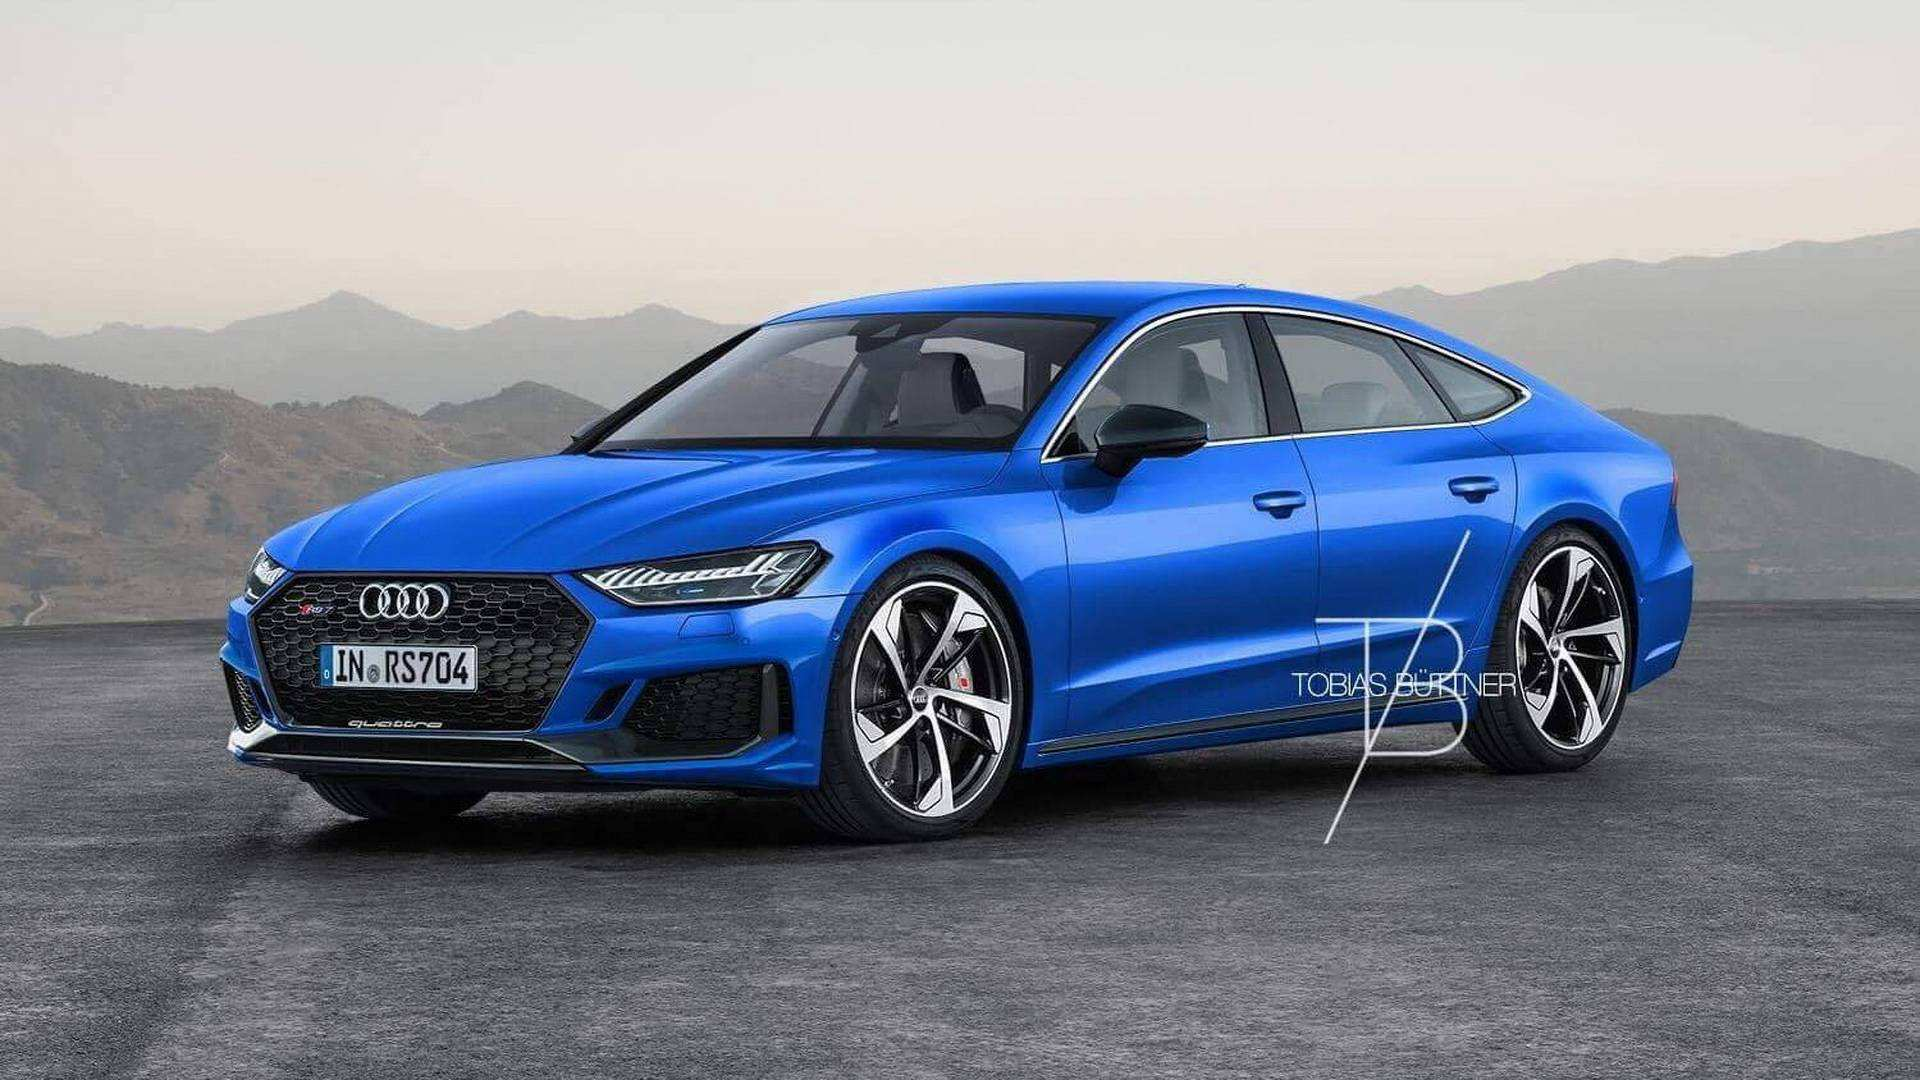 82 All New 2020 Audi A7 Colors Redesign and Concept for 2020 Audi A7 Colors